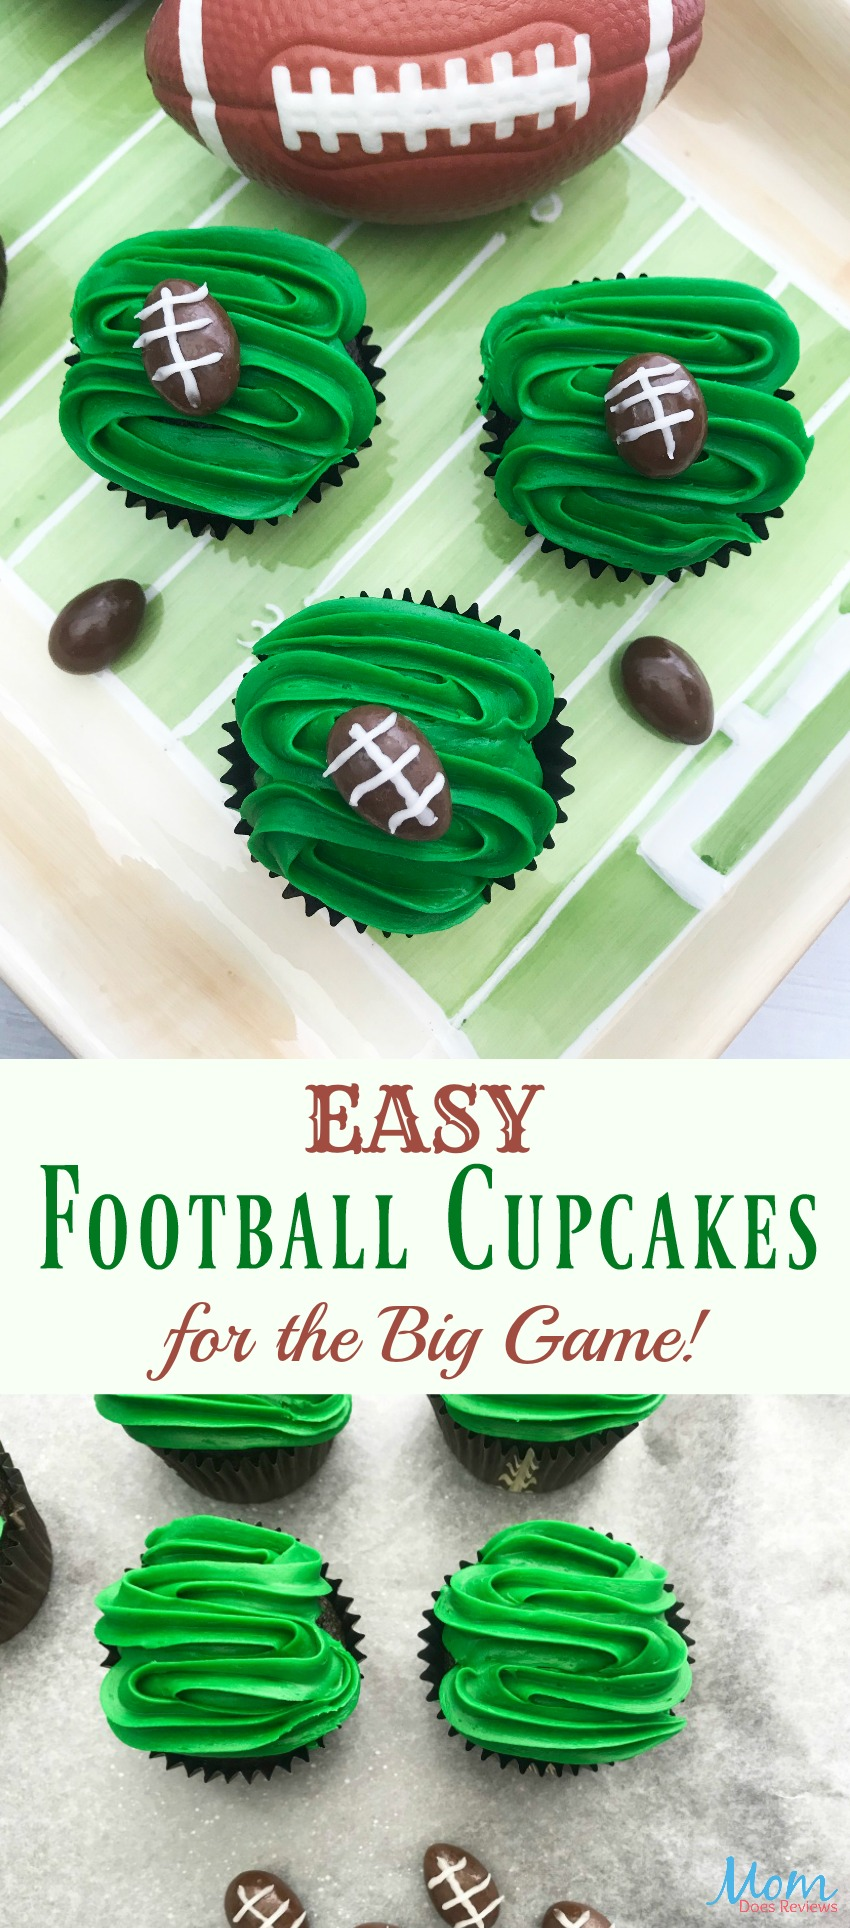 Easy Football Cupcakes for the Big Game #cupcakes #football #sweets #desserts #food #biggame